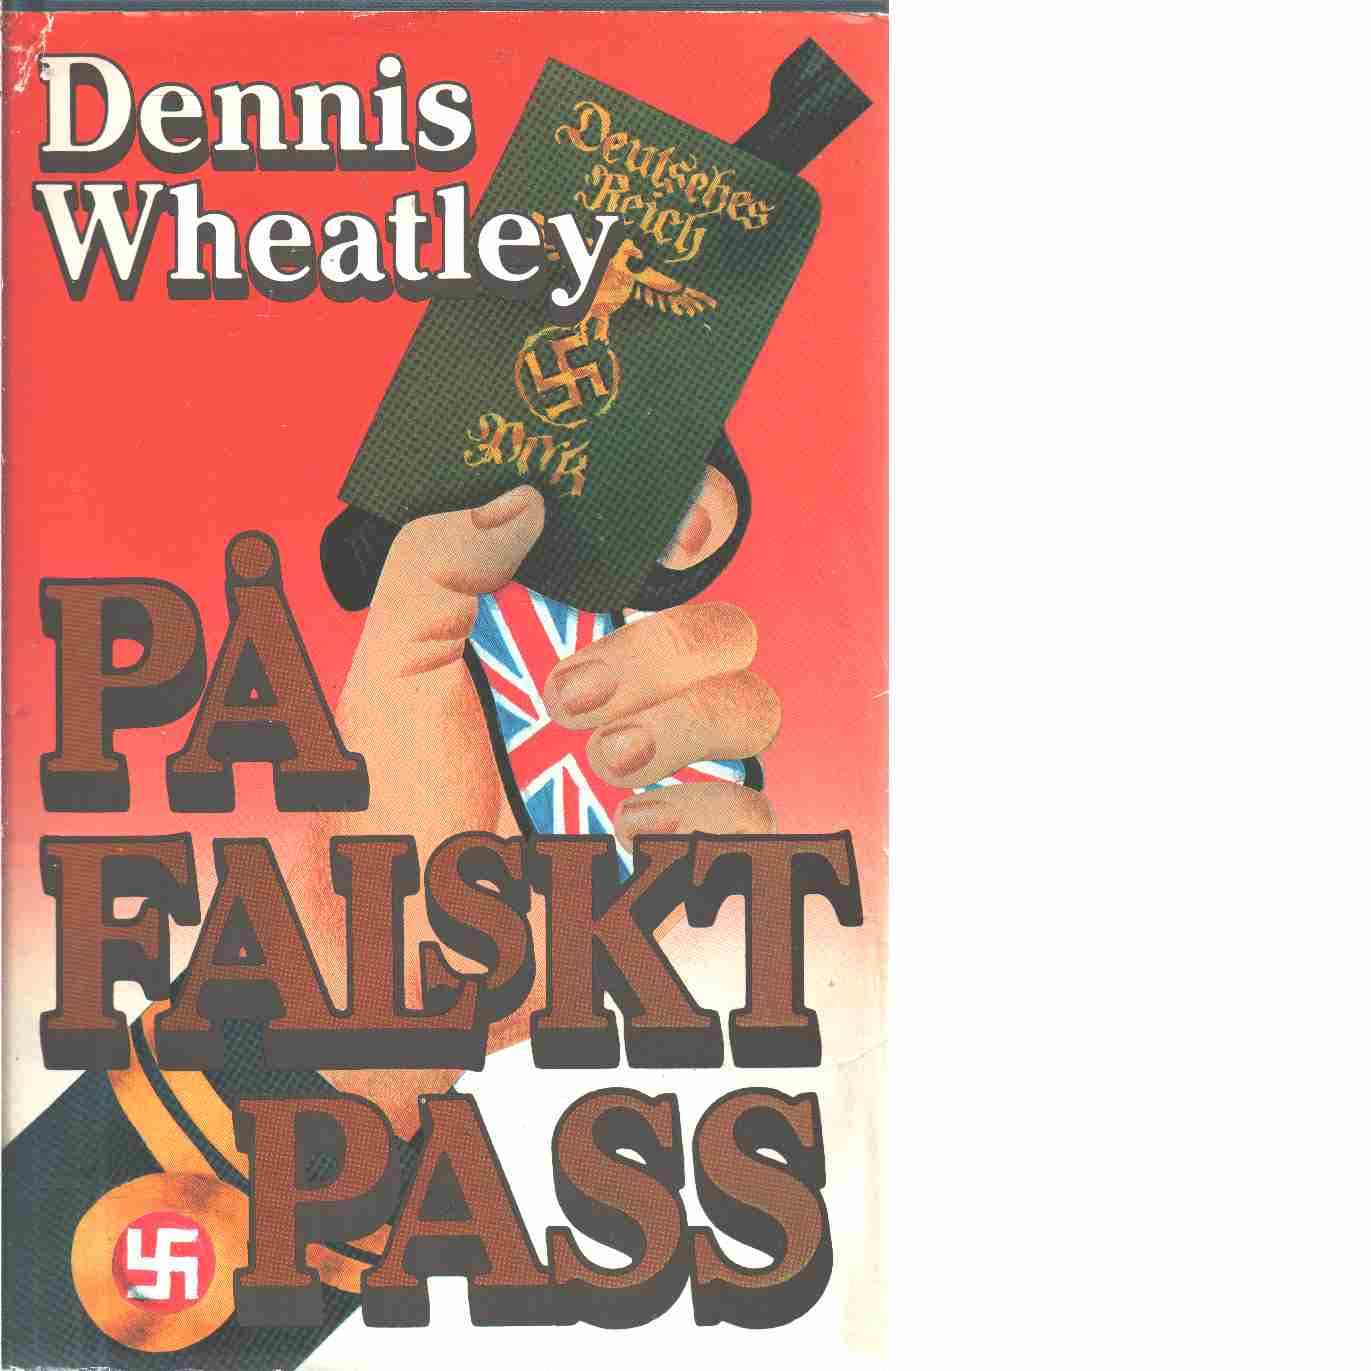 På falskt pass - Wheatley, Dennis